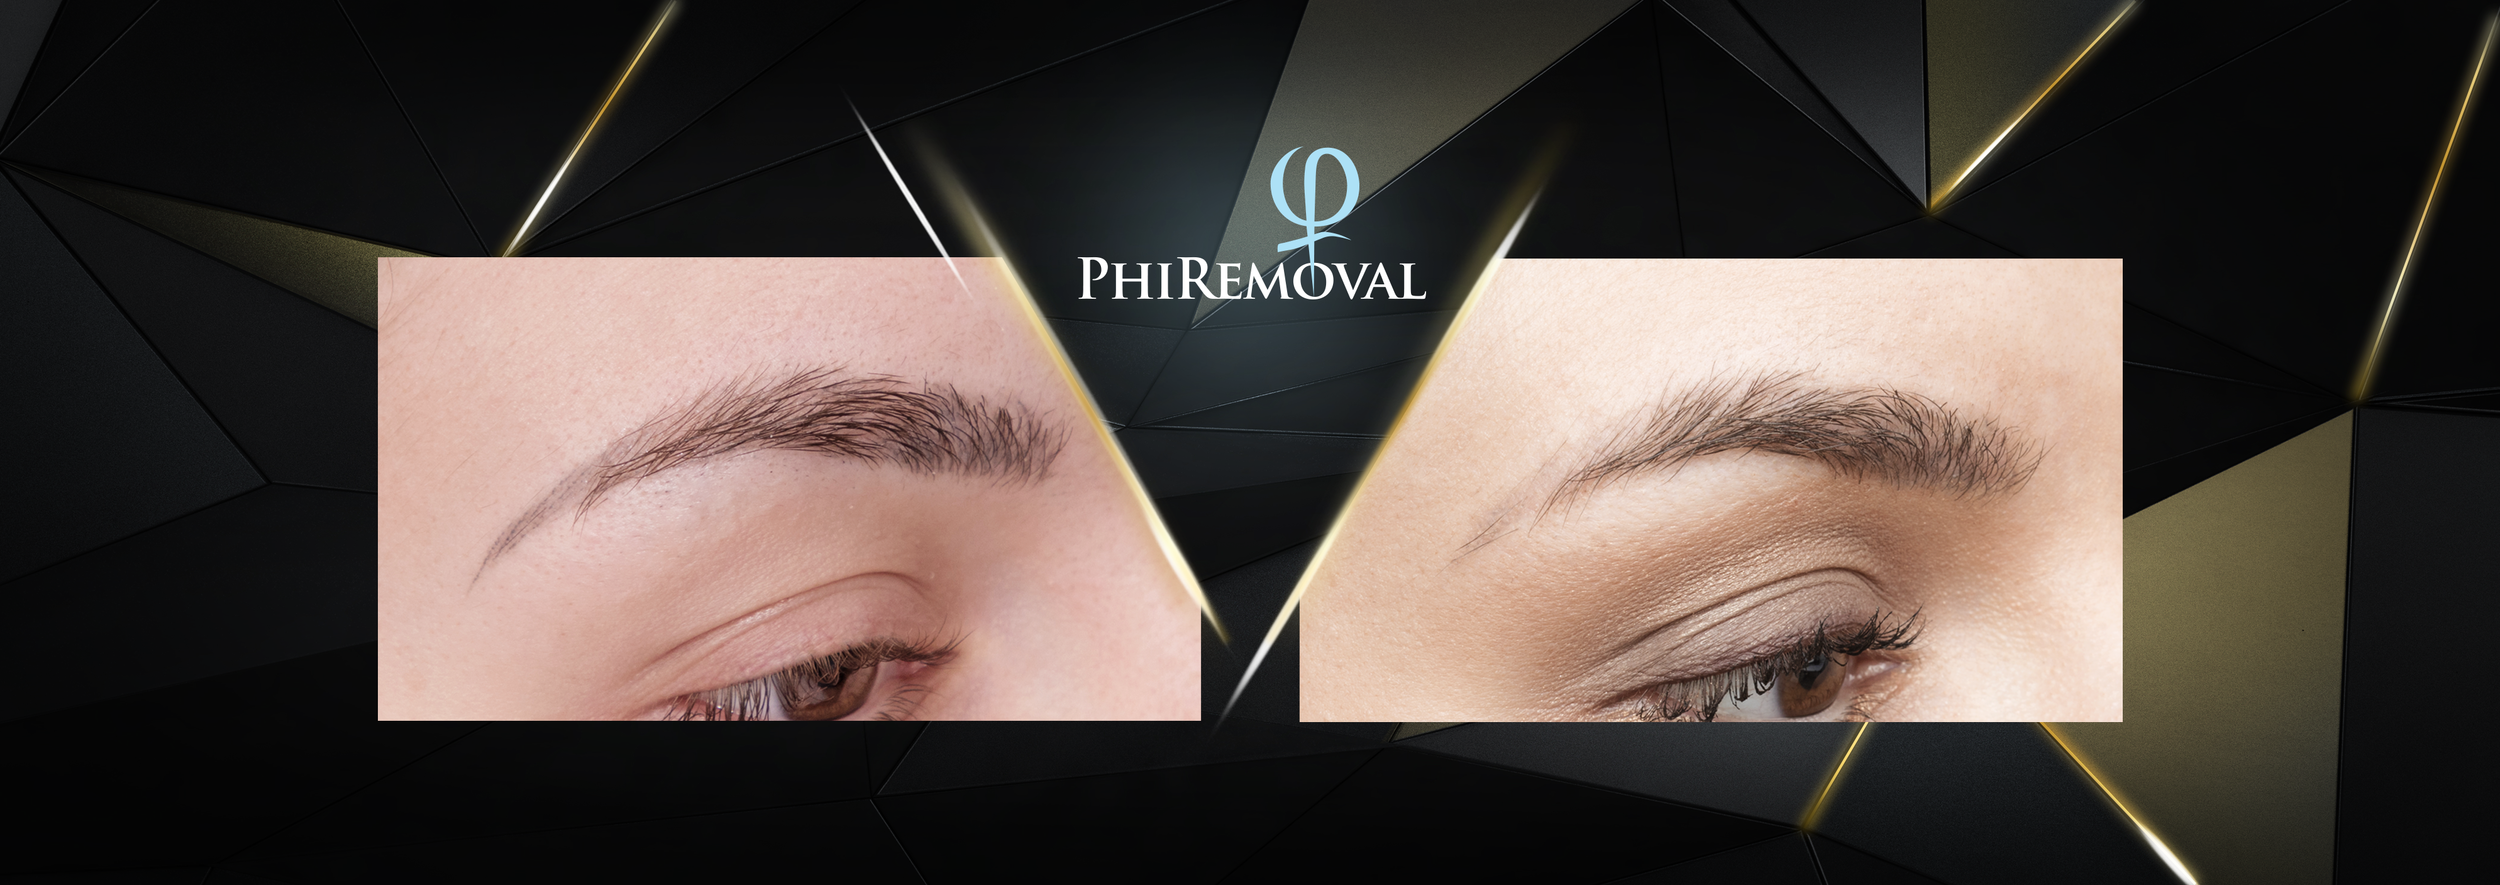 PHIREMOVAL-Before-After-1.png